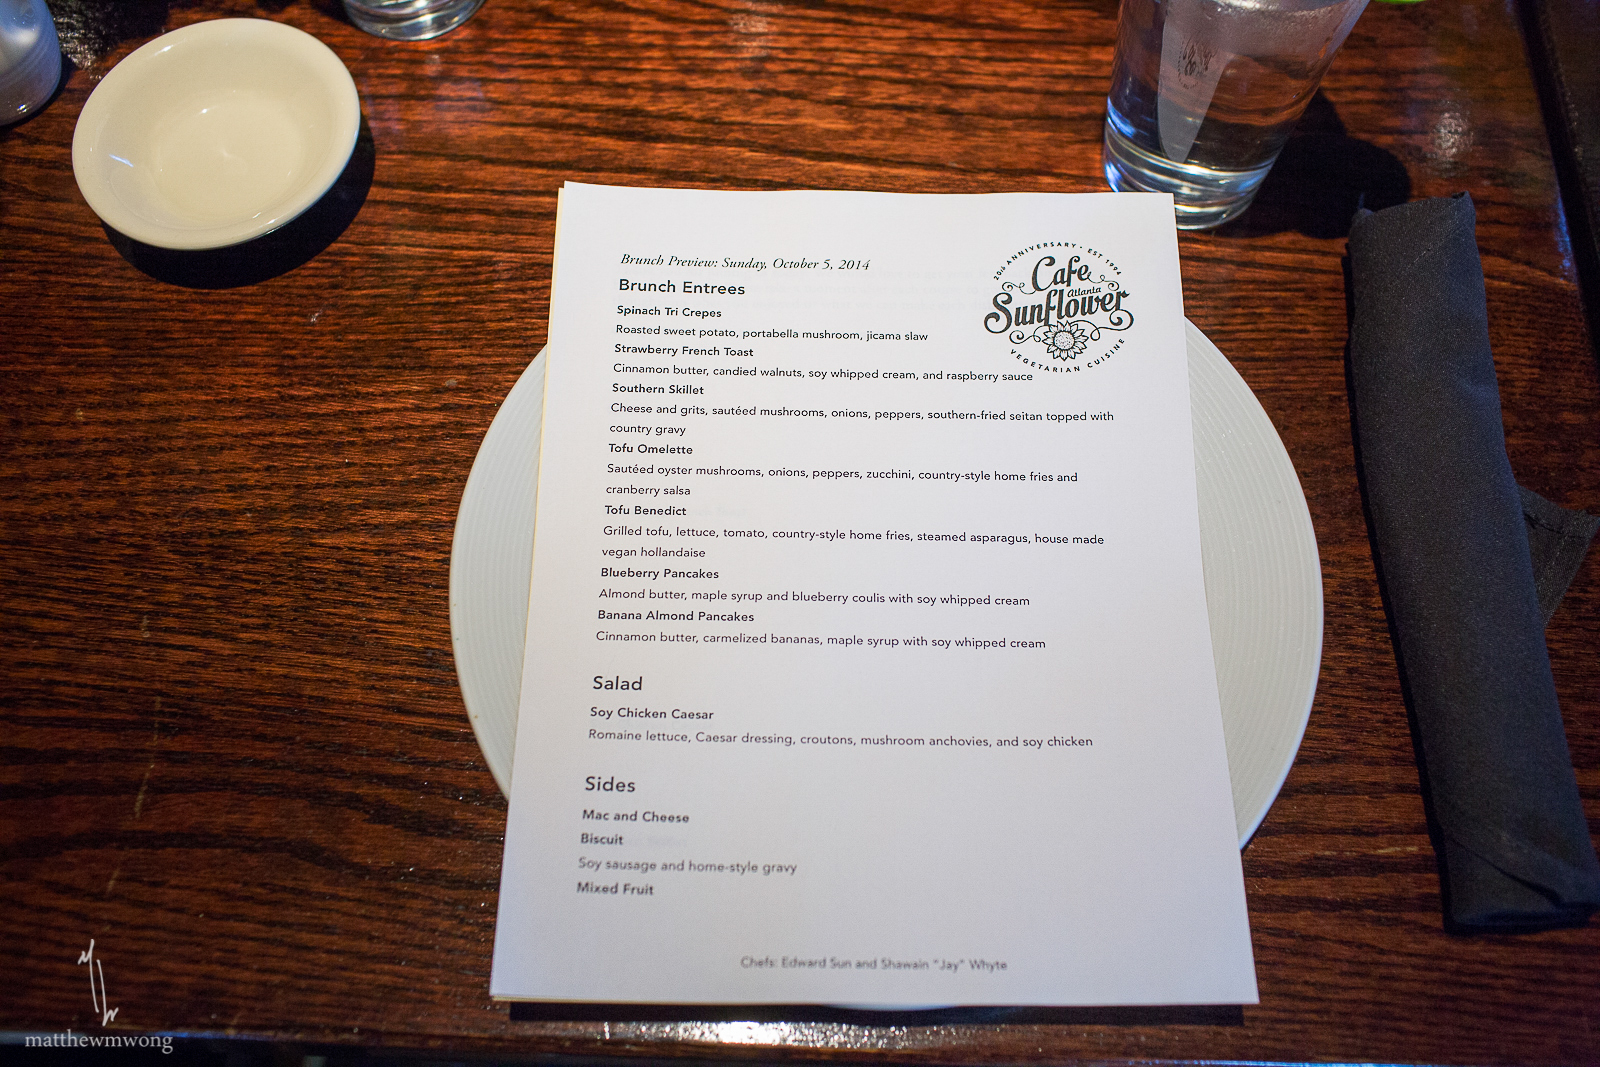 Cafe Sunflower invitation only sneak peek of their new brunch menu